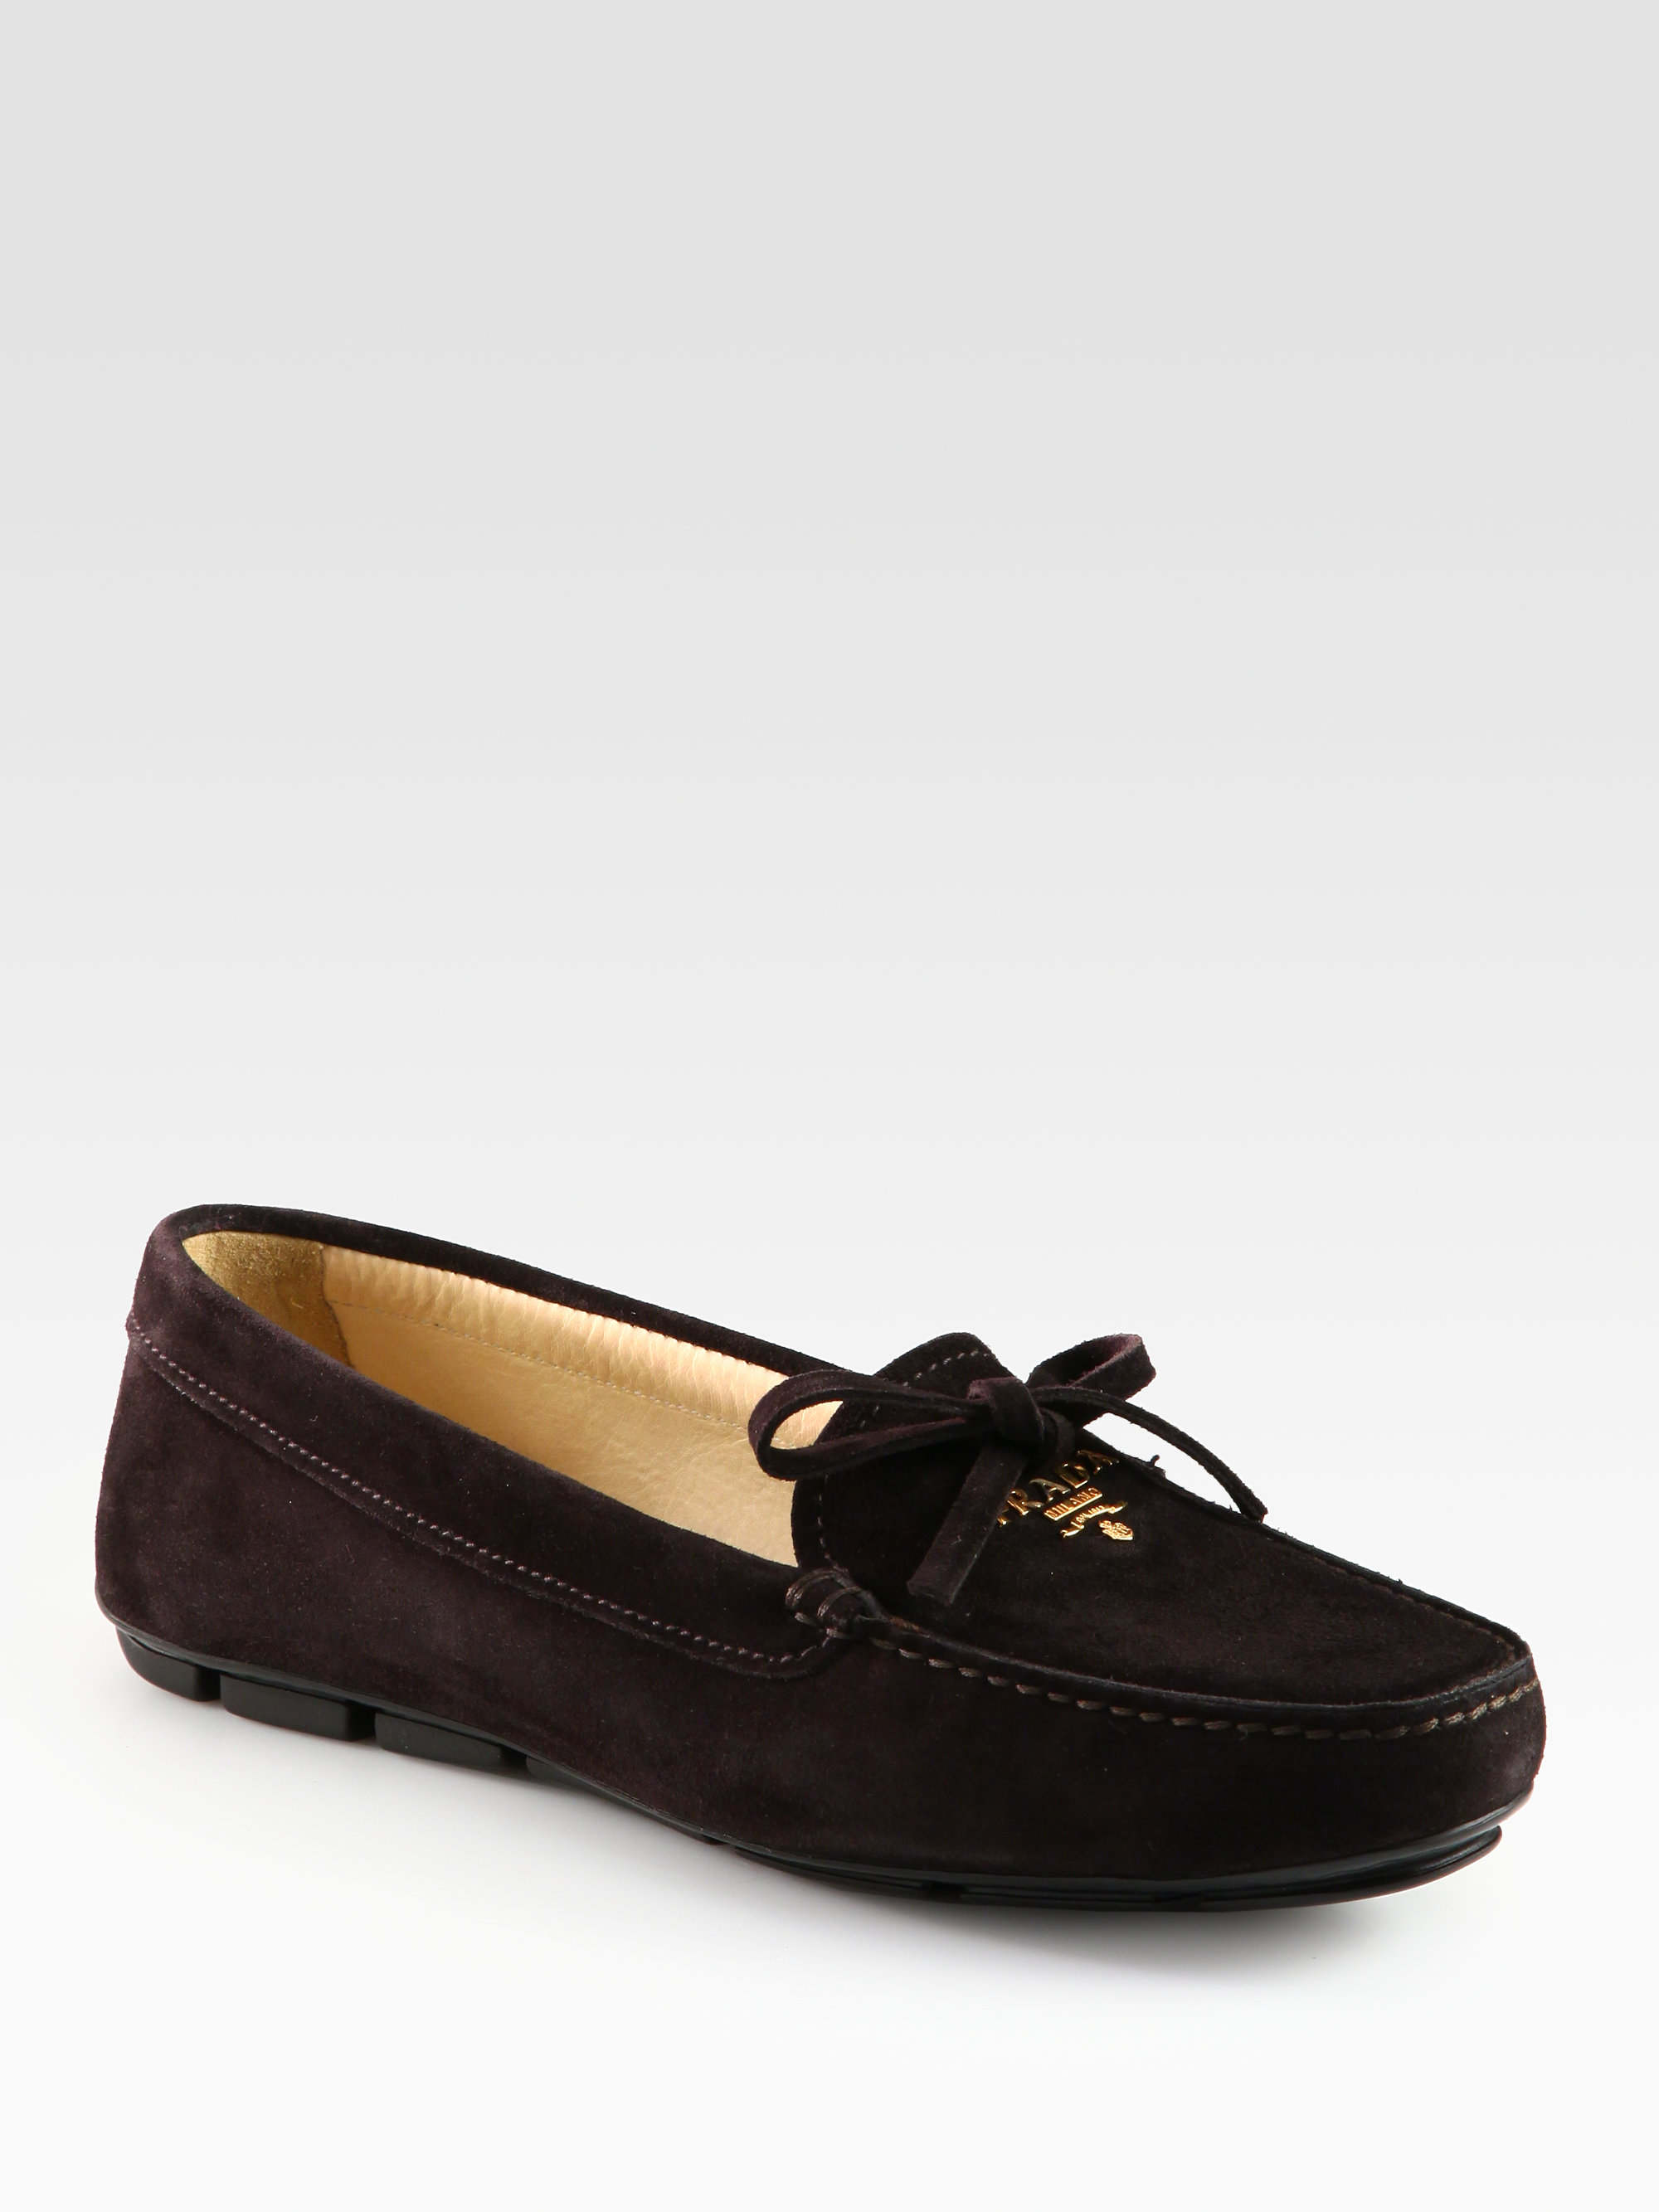 Lyst - Prada Suede Bow Drivers in Brown a684c53a2